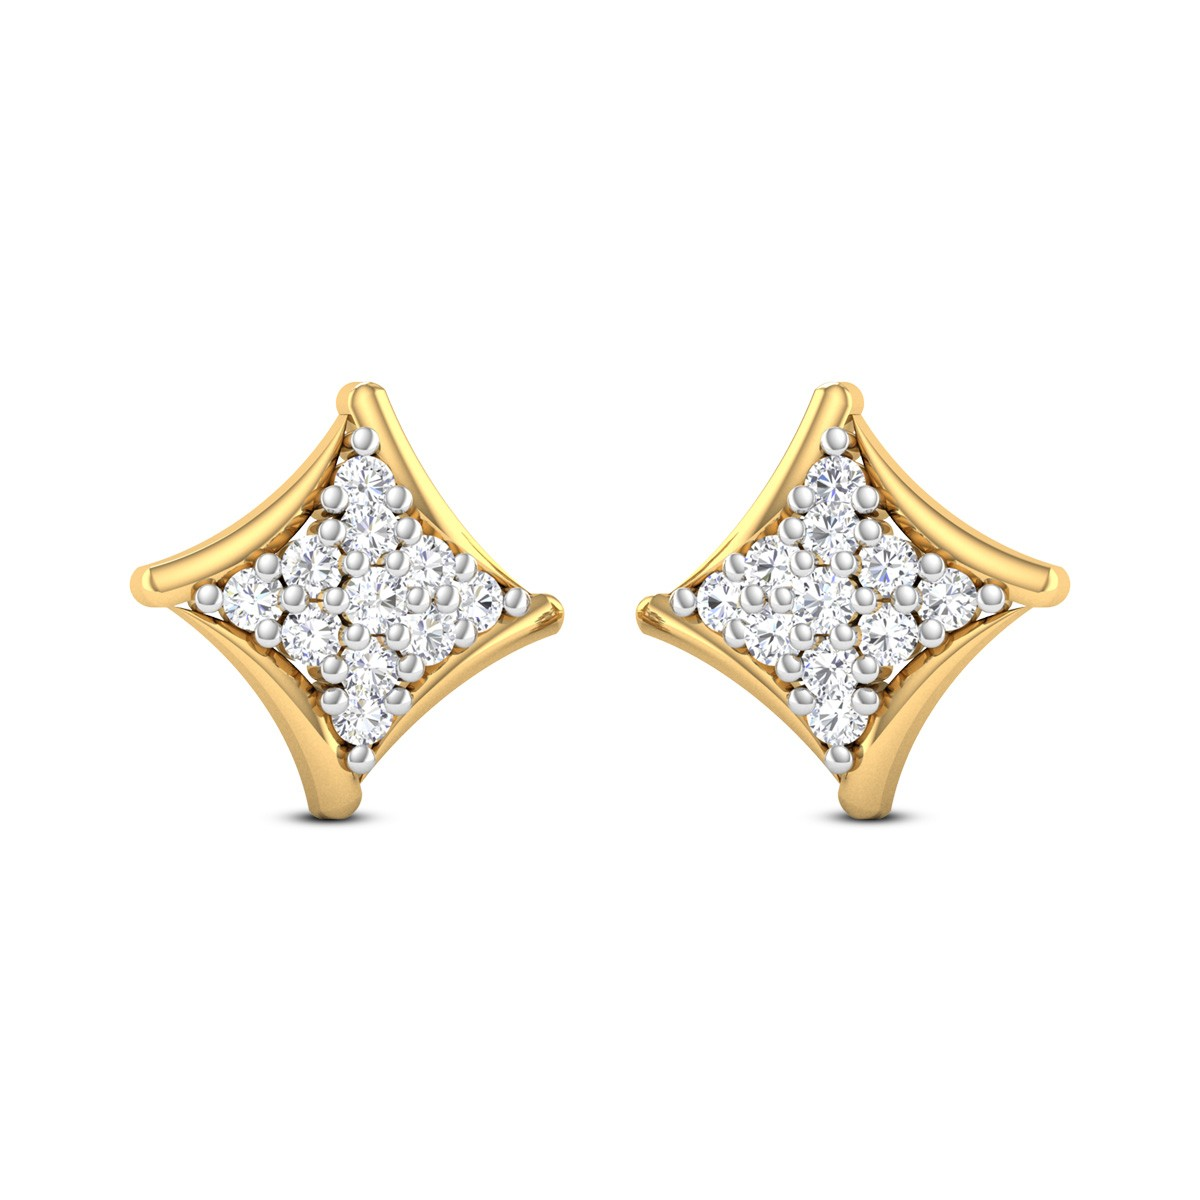 Invidia Diamond Earrings